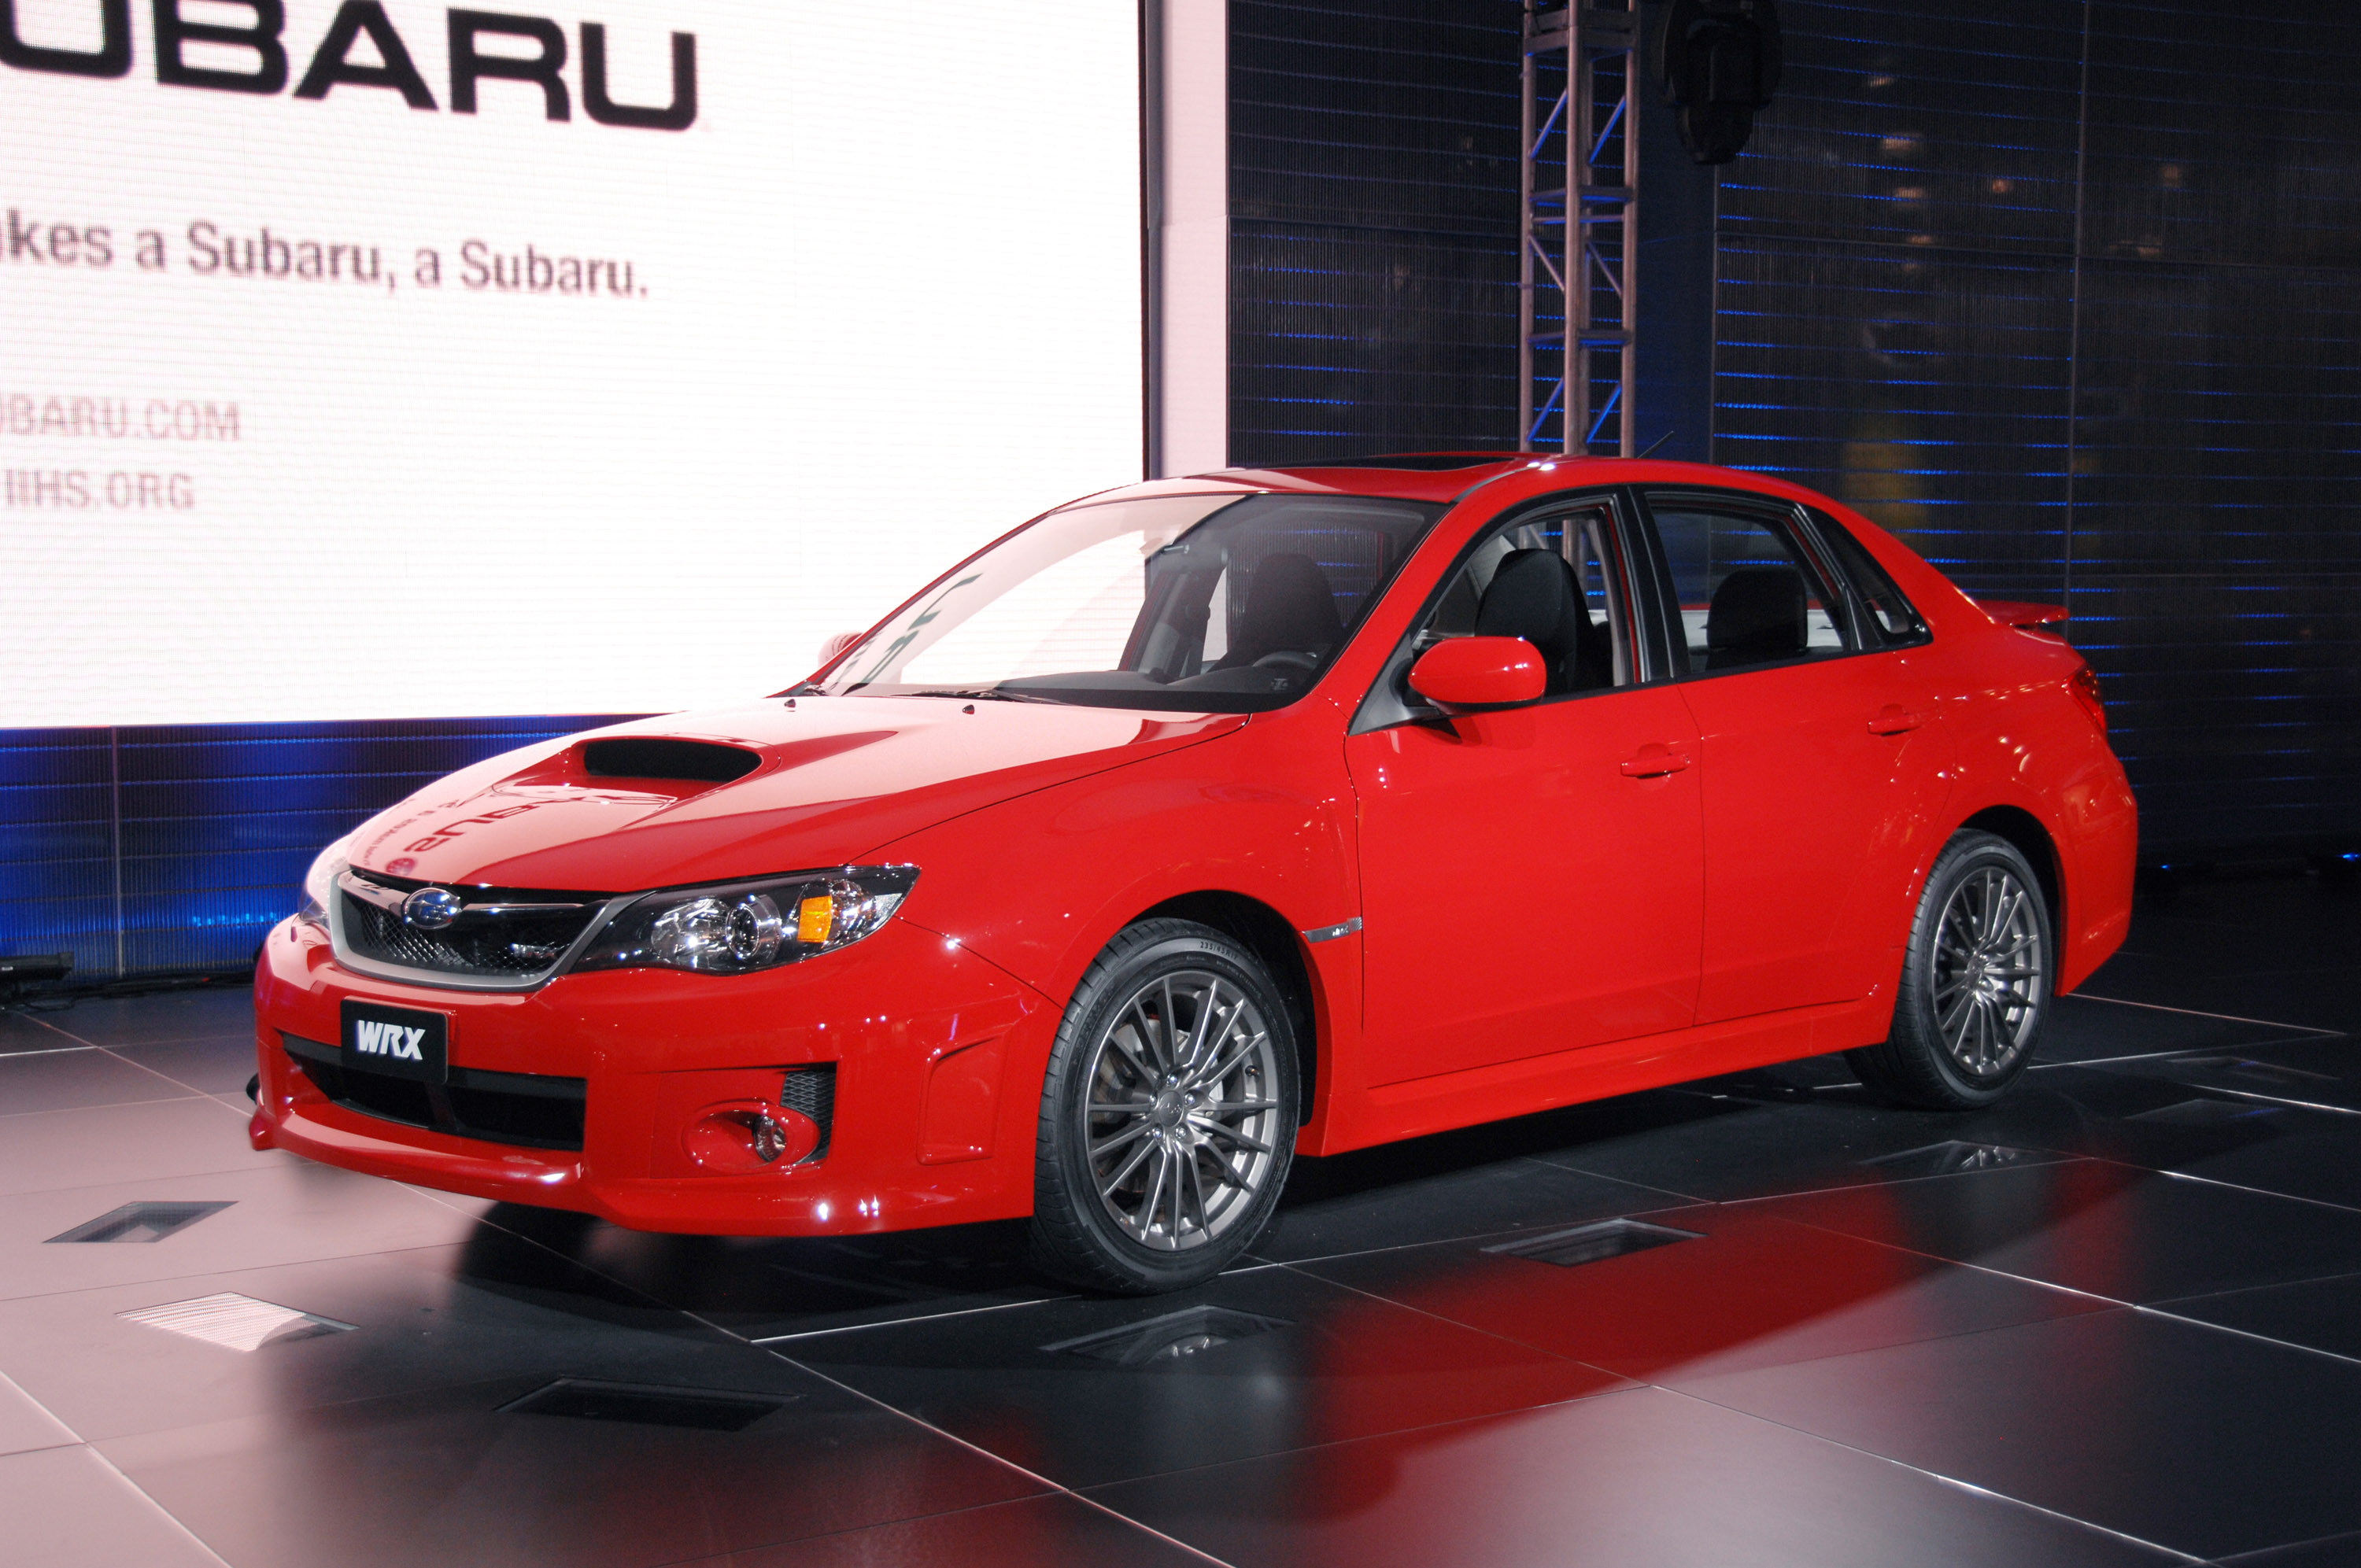 Subaru Impreza Wrx Premium 4 Door New York 2010 Picture 36364